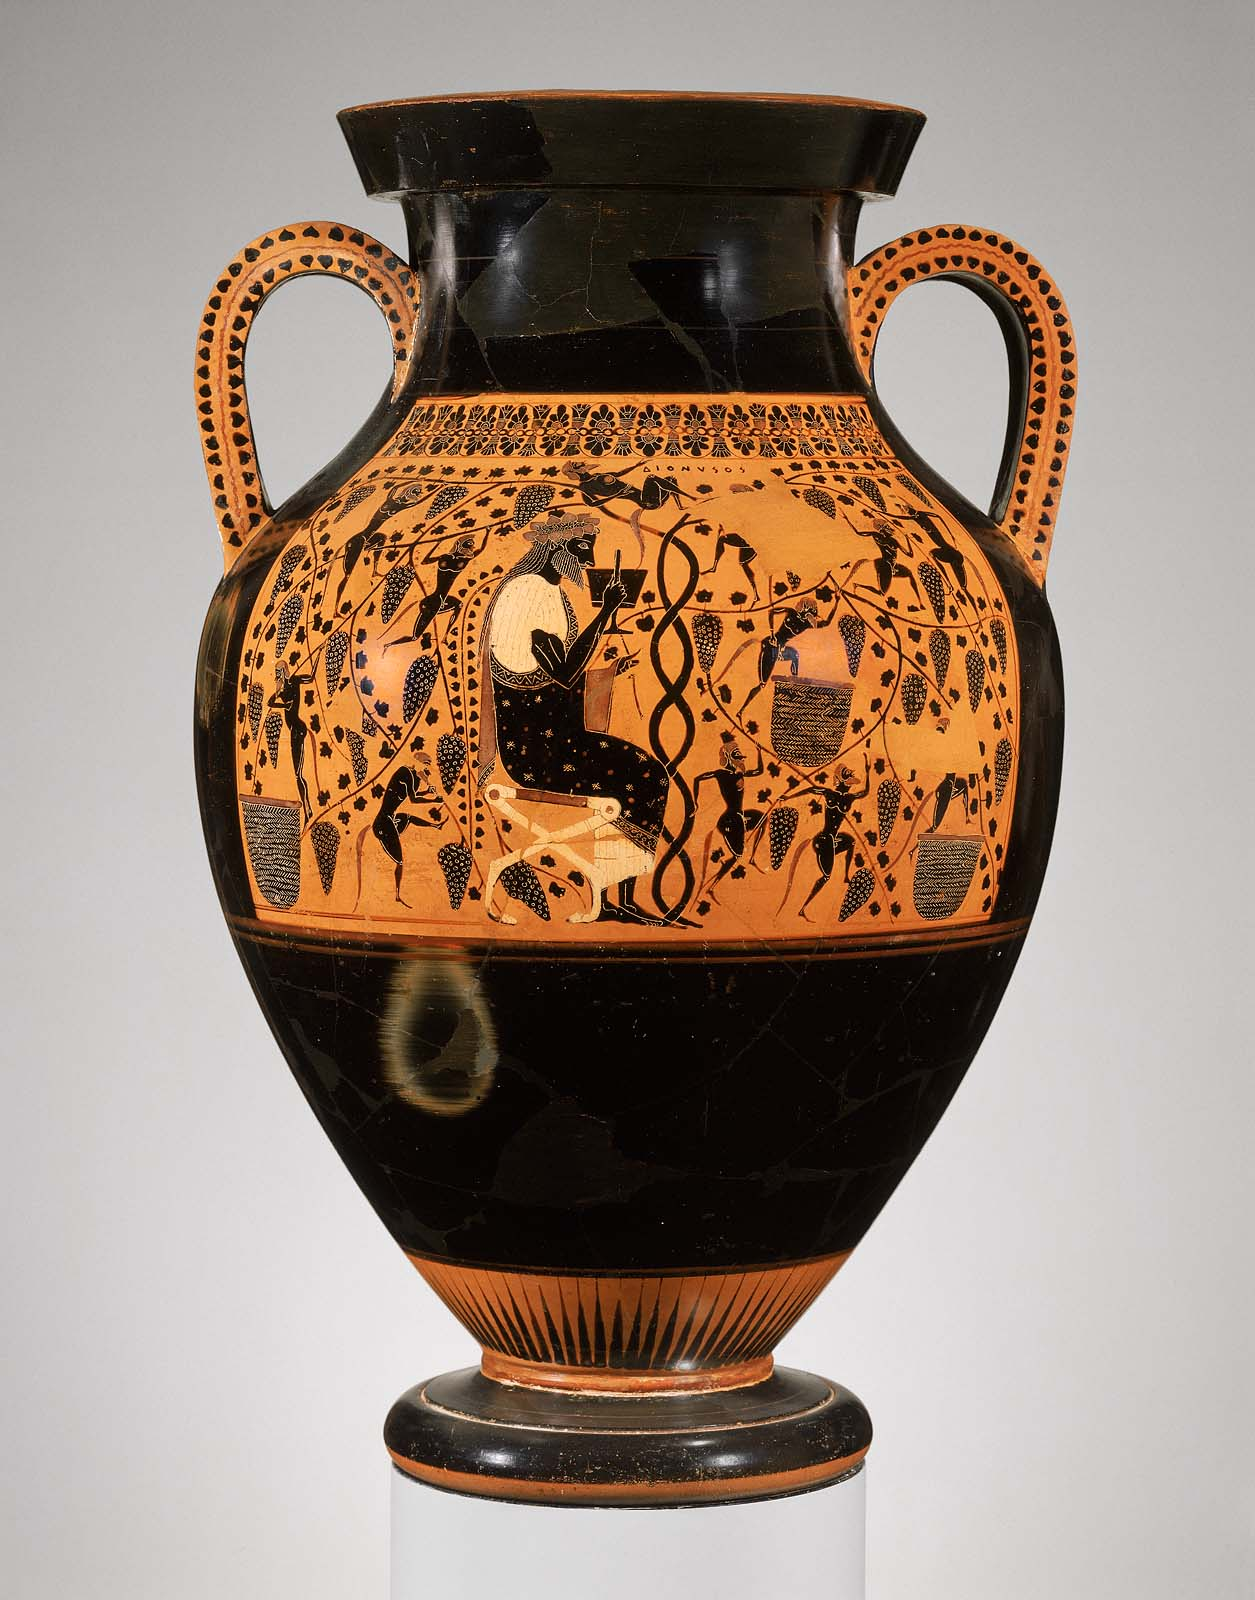 You are here & Two-handled jar (amphora) | Museum of Fine Arts Boston